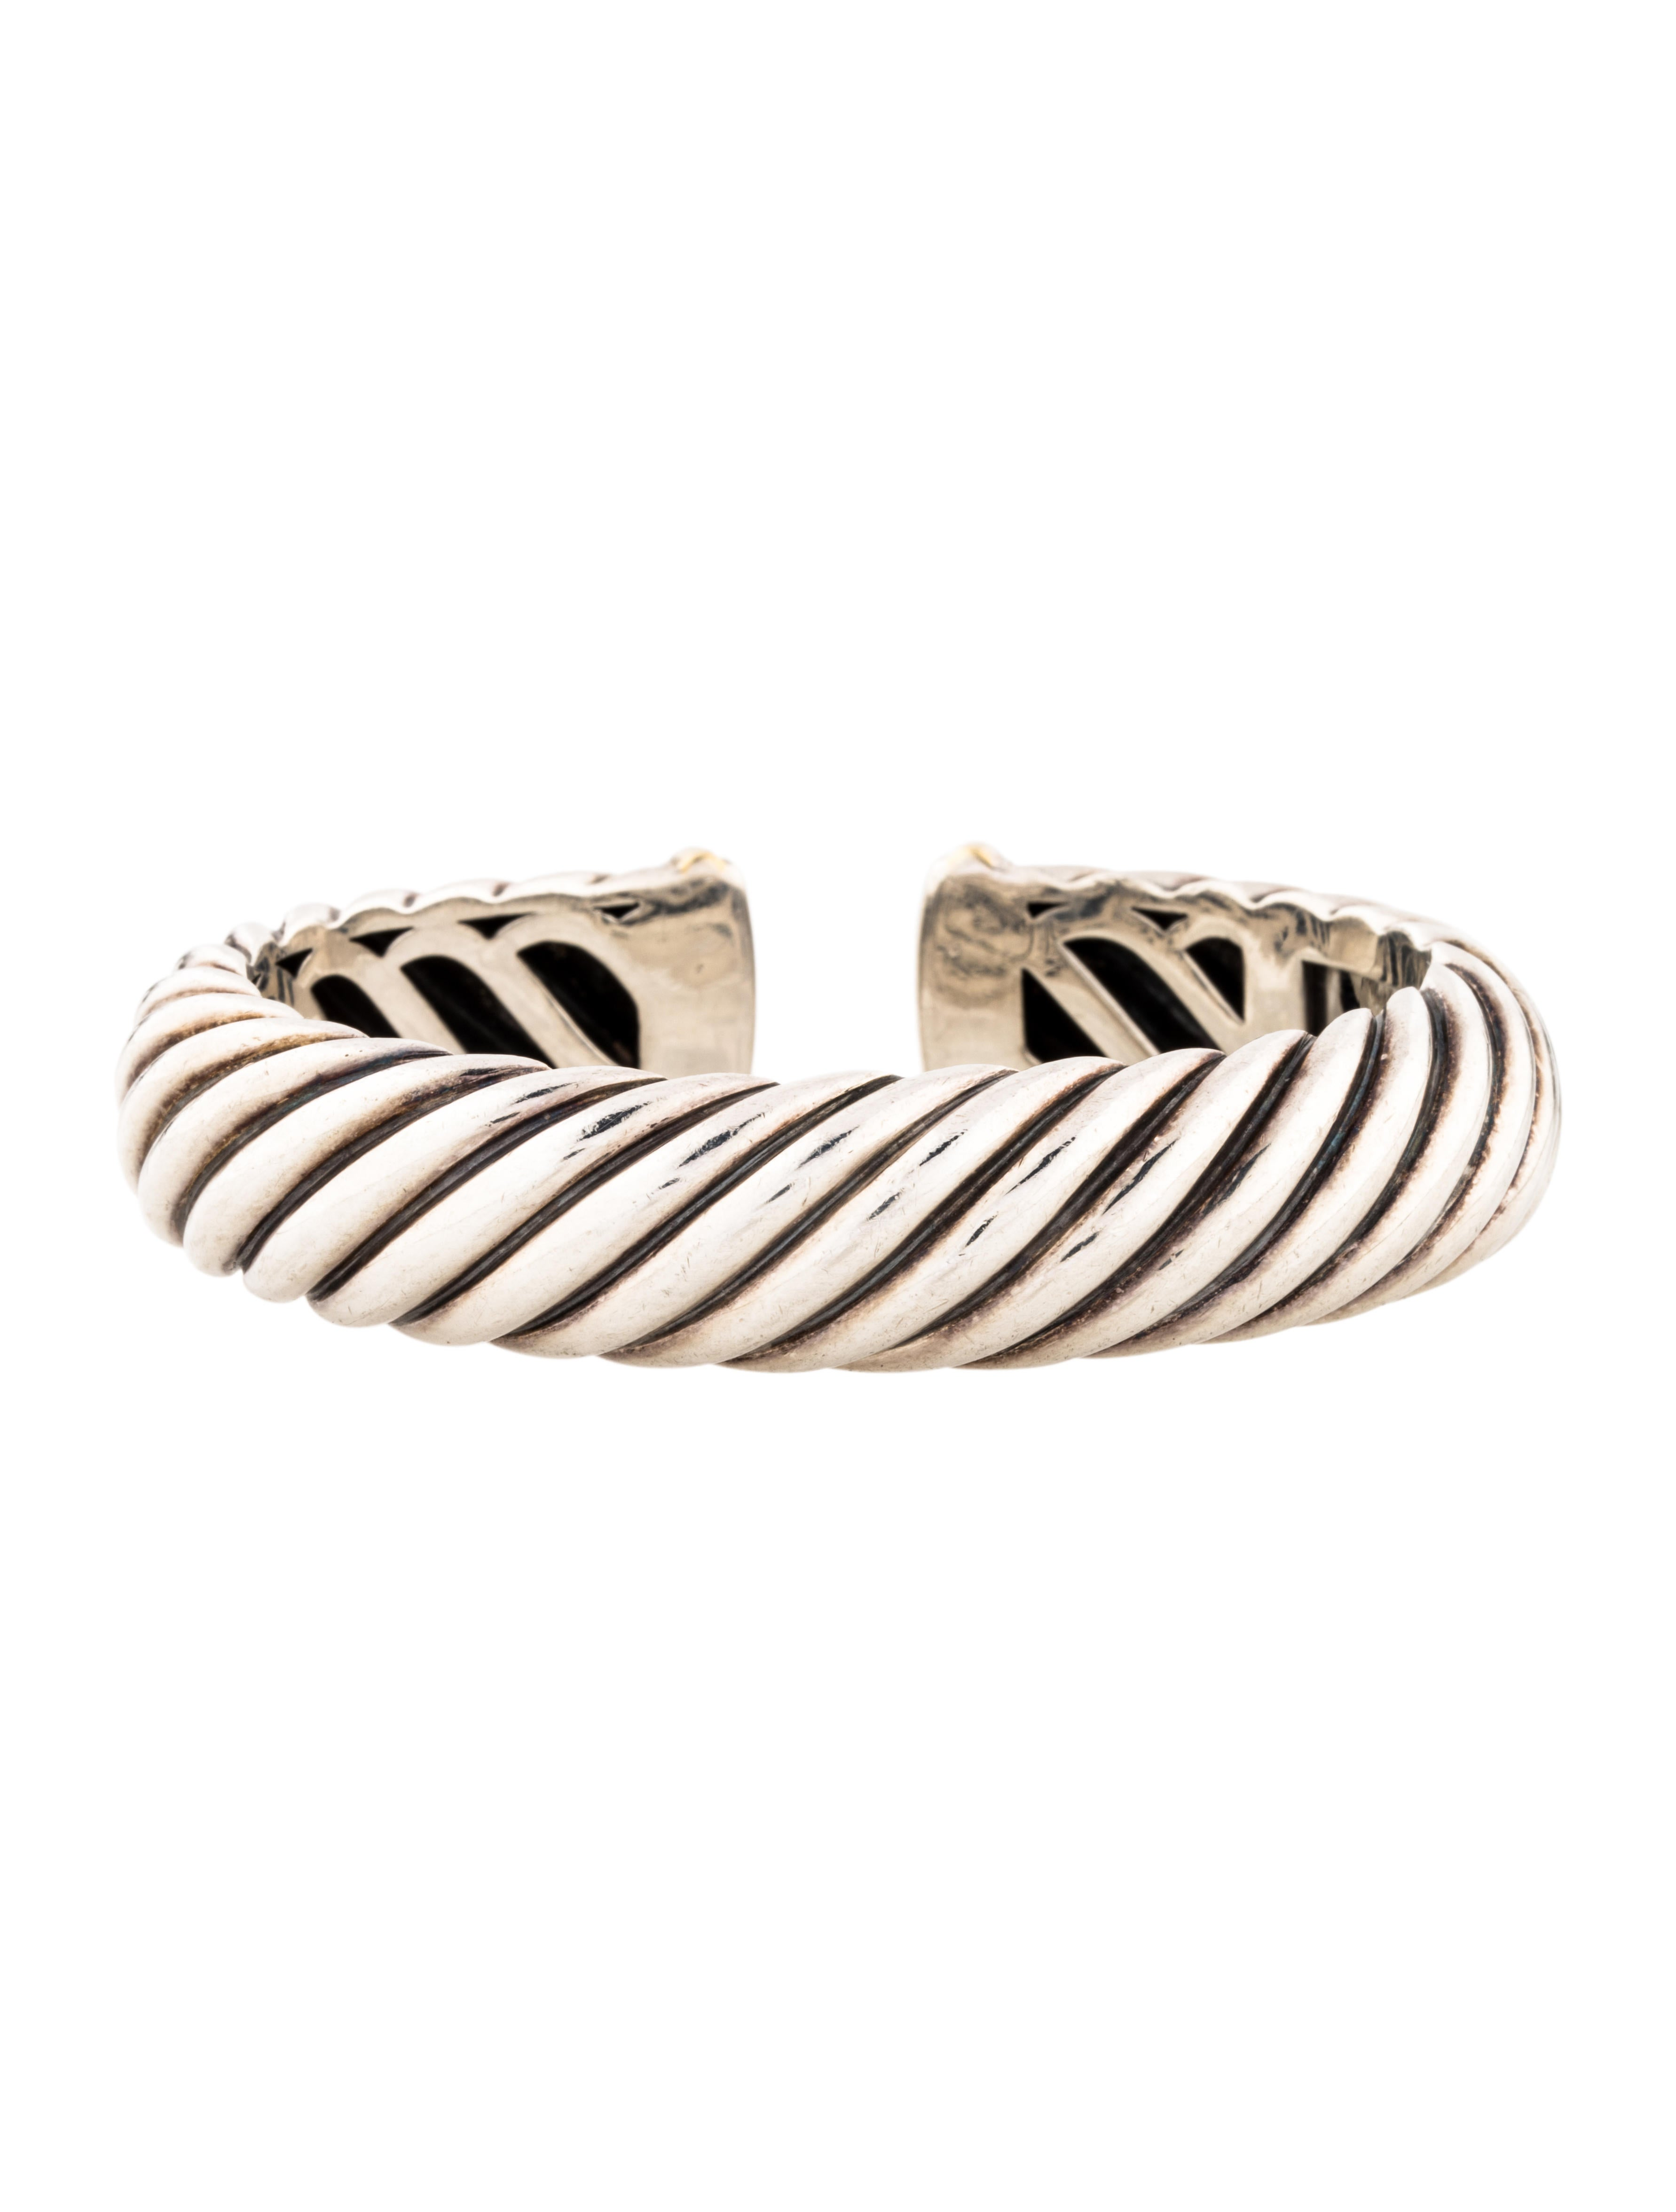 David yurman sculpted cable cuff bracelets dvy41327 for David yurman inspired bracelet cable